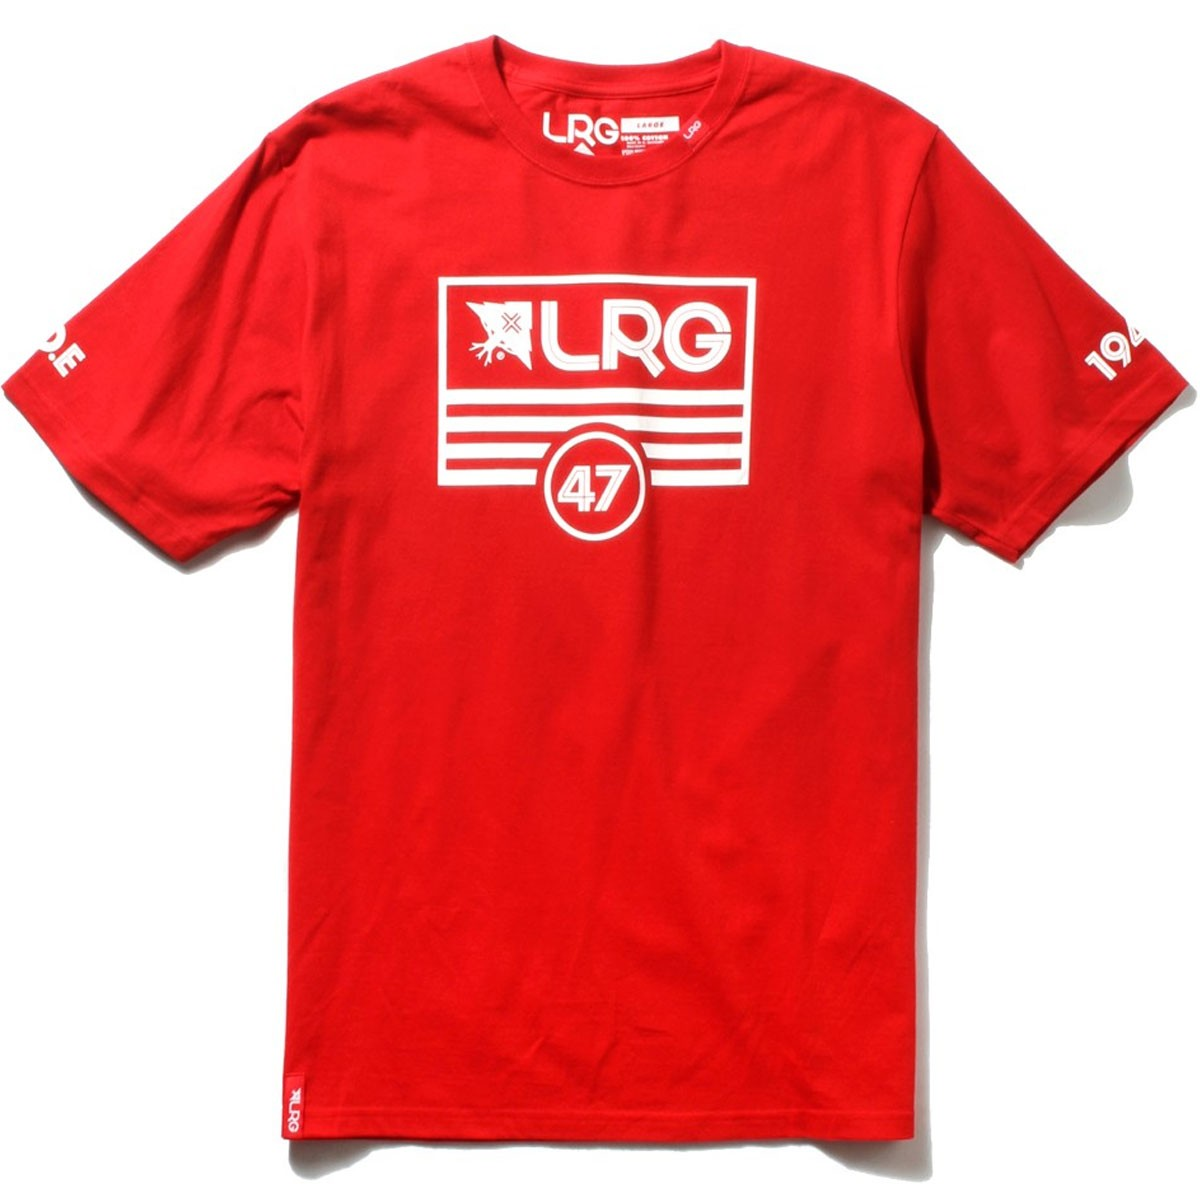 LRG Lifted Flag T-Shirt - Red